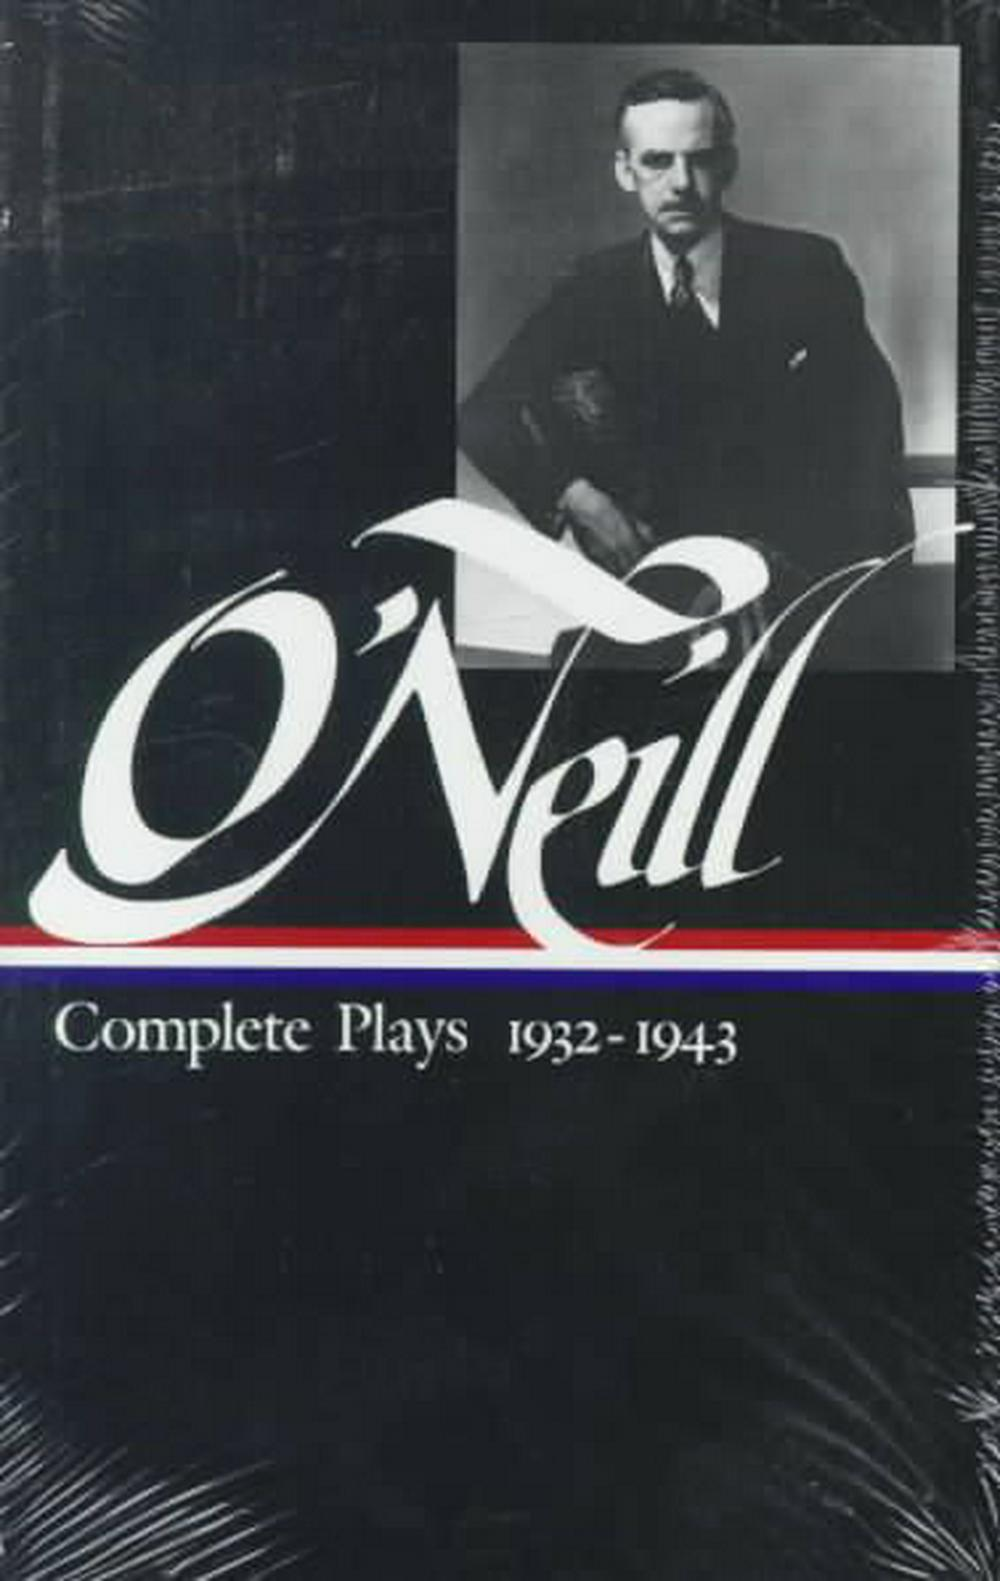 Eugene O'Neill: Complete Plays Vol. 3 1932-1943 (LOA #42) by Eugene O'Neill, ISBN: 9780940450509